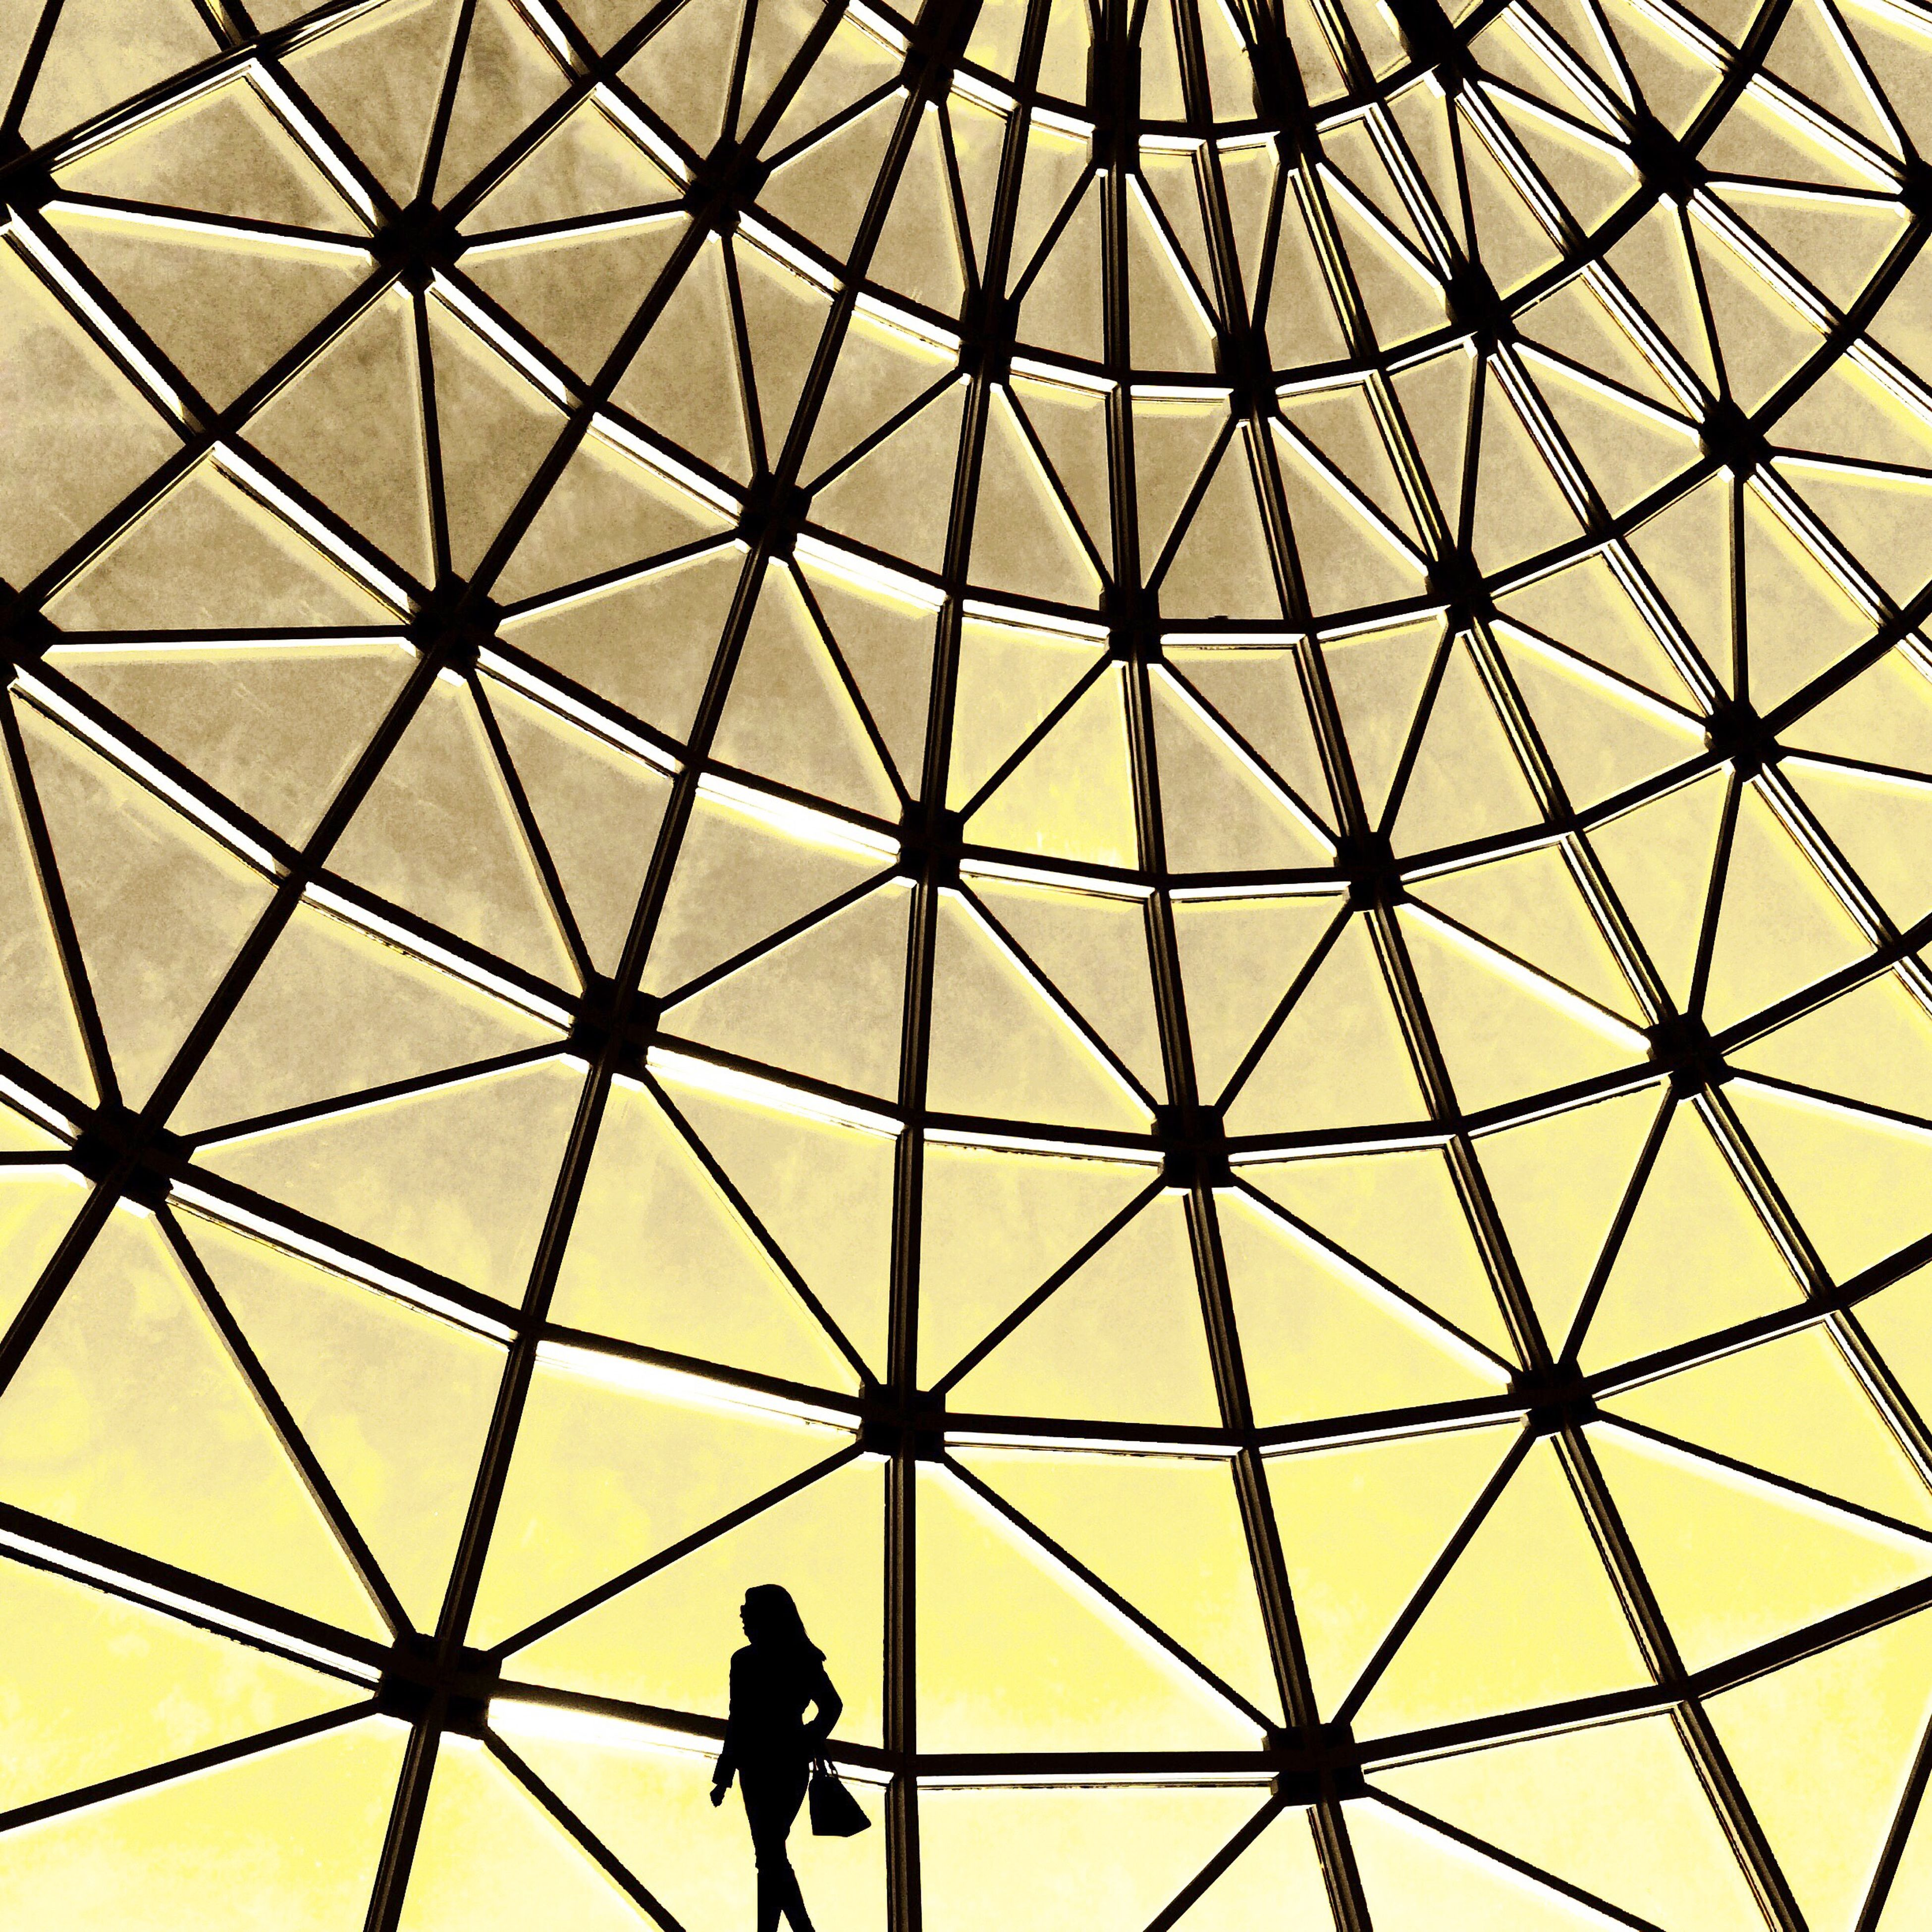 indoors, ceiling, architecture, built structure, pattern, low angle view, men, full frame, lifestyles, backgrounds, glass - material, leisure activity, modern, architectural feature, standing, geometric shape, silhouette, design